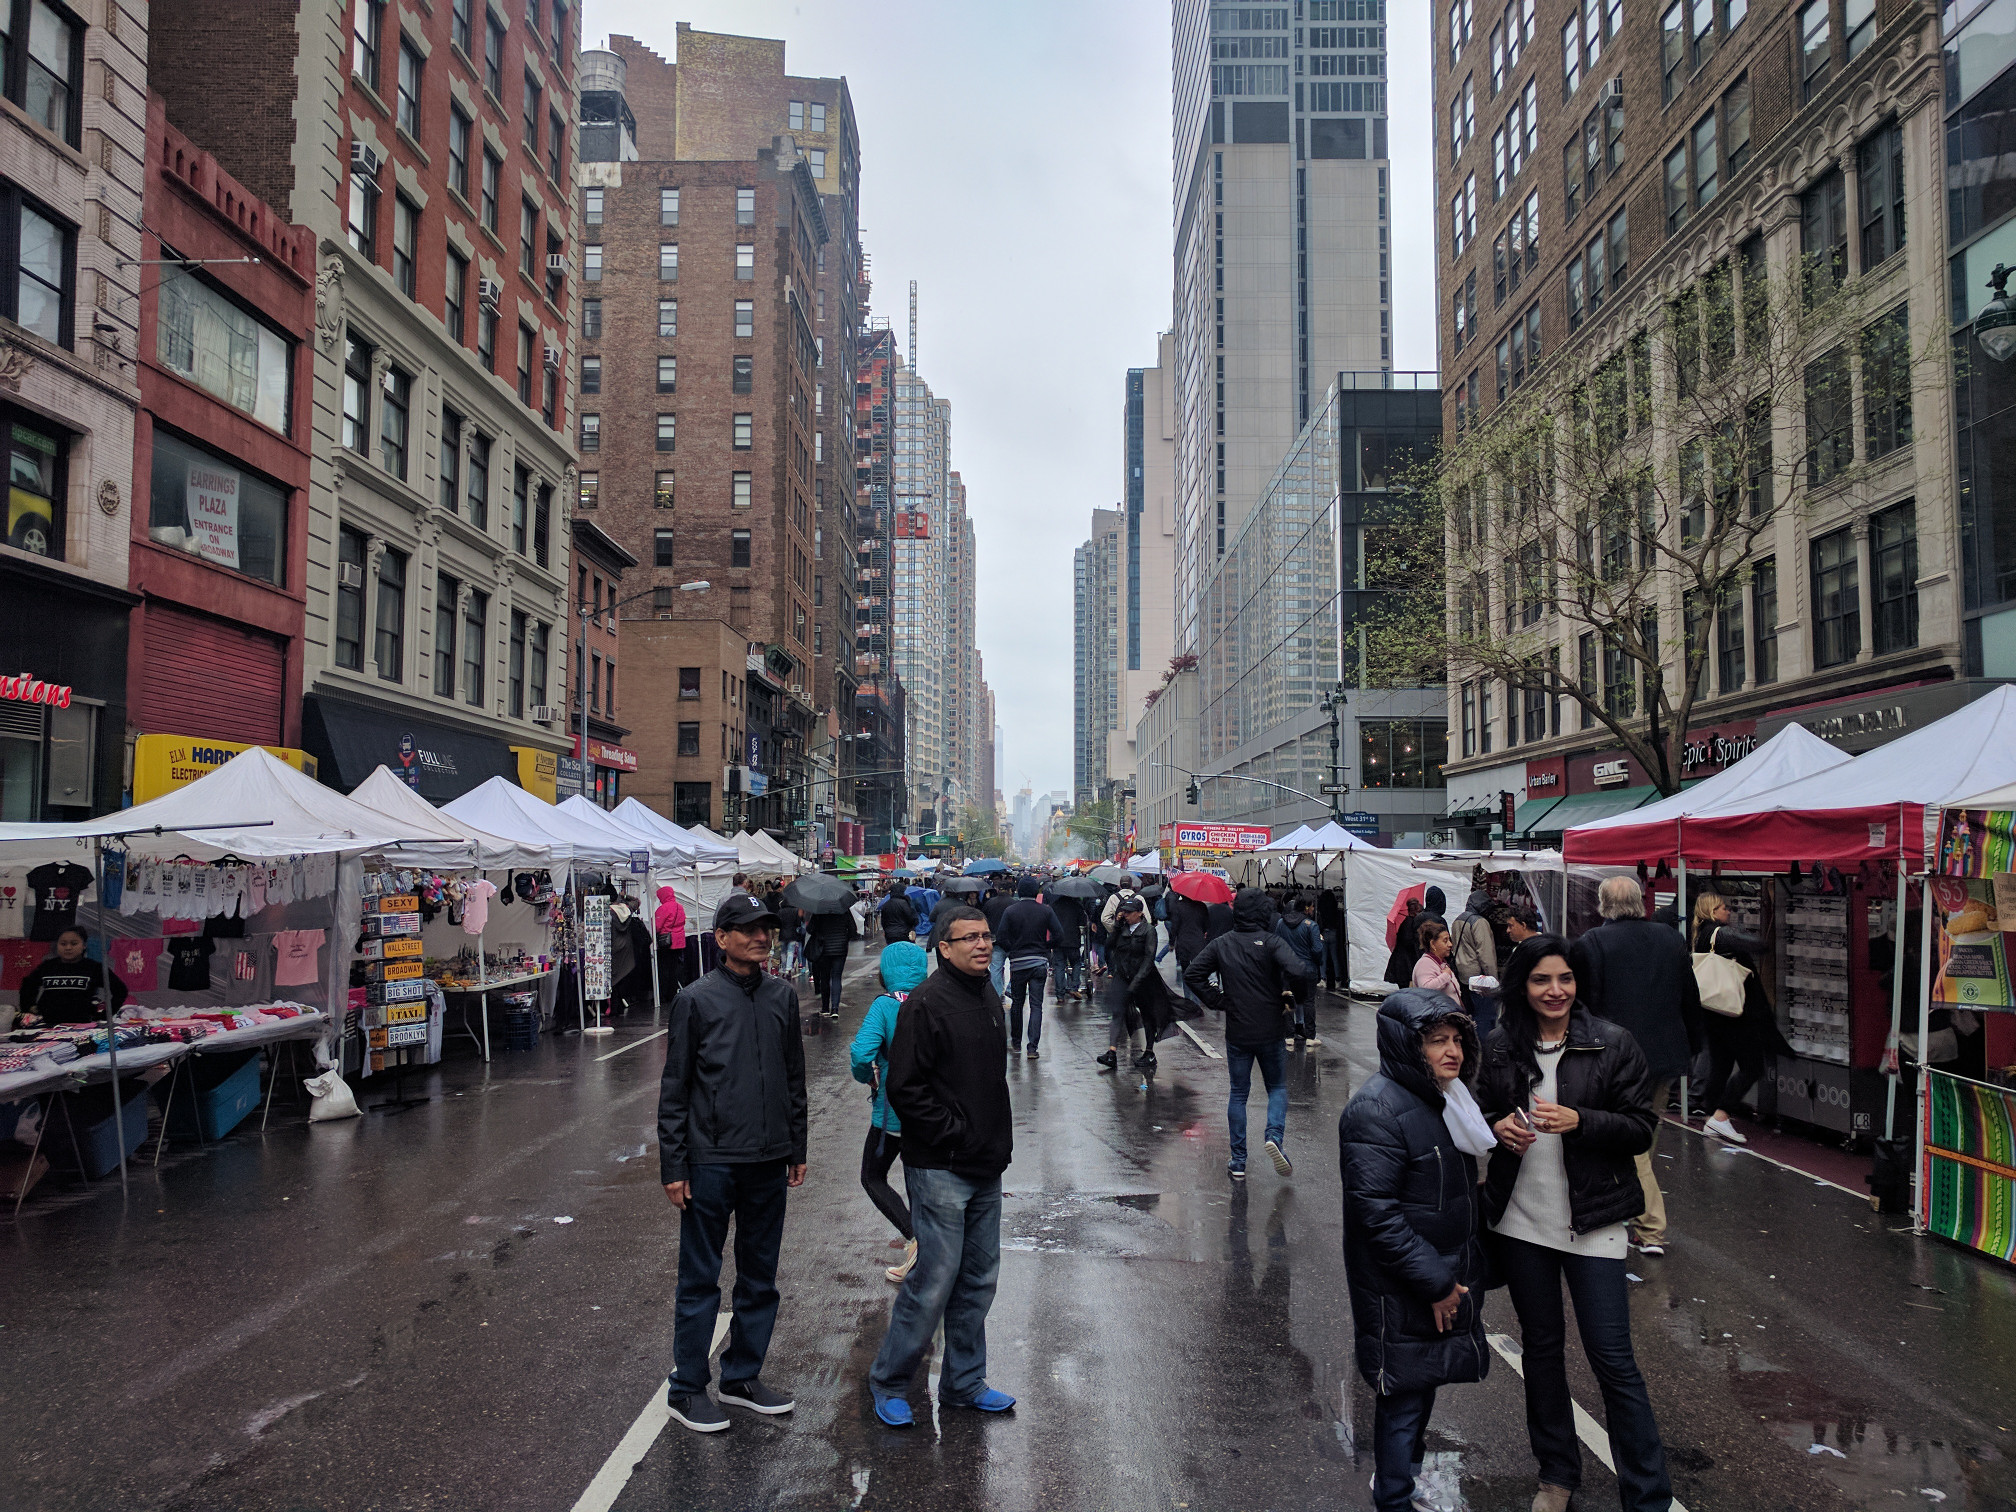 6th Avenue Food Stands